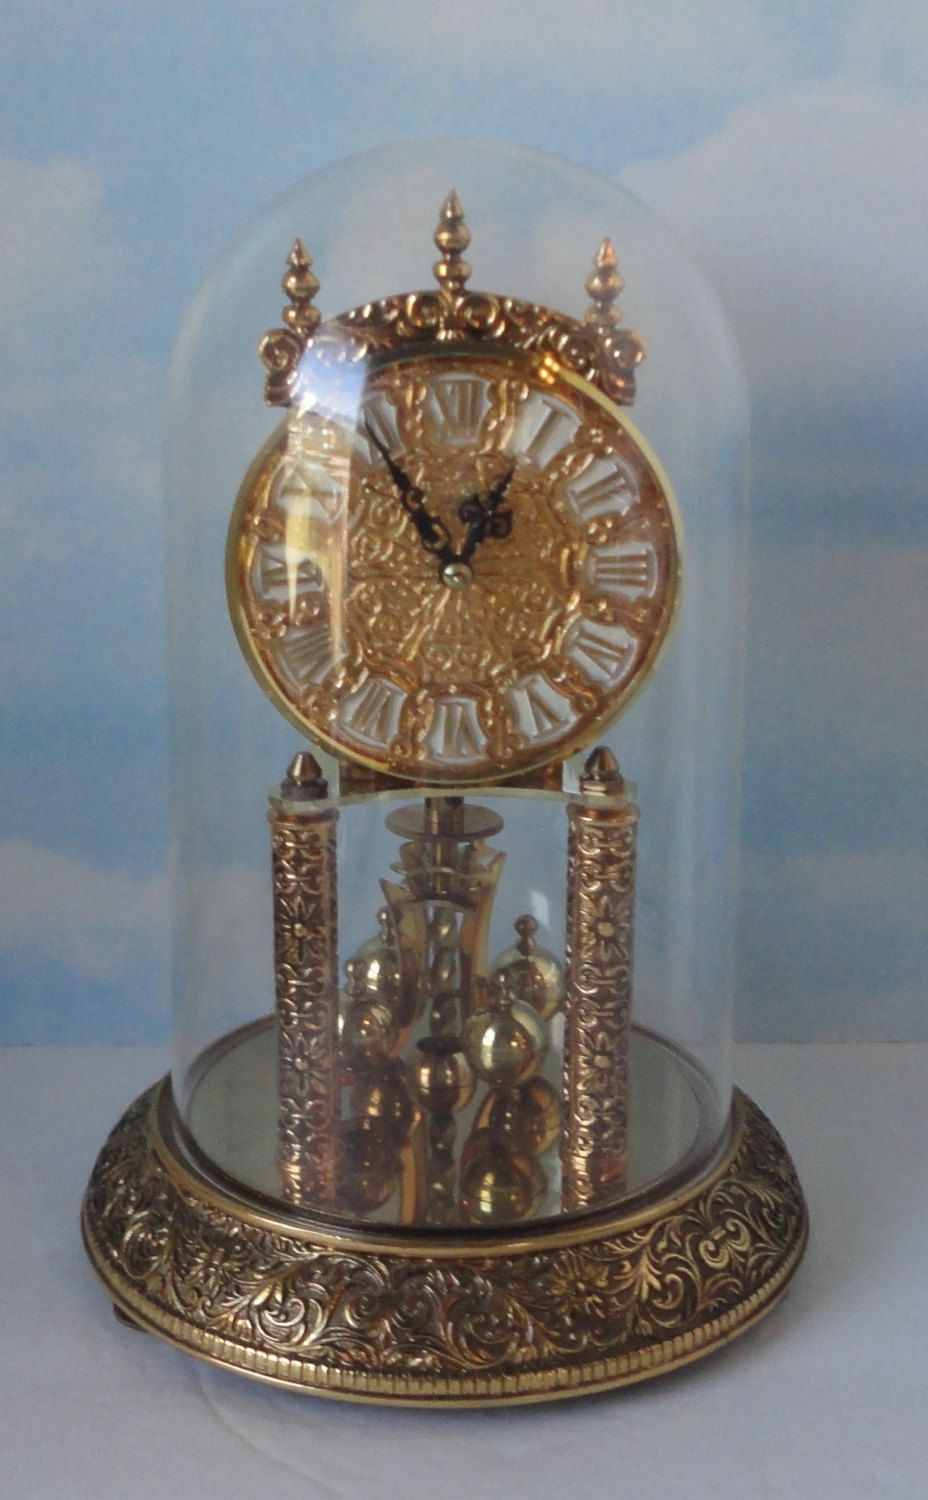 156a6f8de50 Vintage Kundo Kieninger Obergfell Anniversary Shelf Mantle Clock with Dome.  For parts by Cosasraras on Etsy